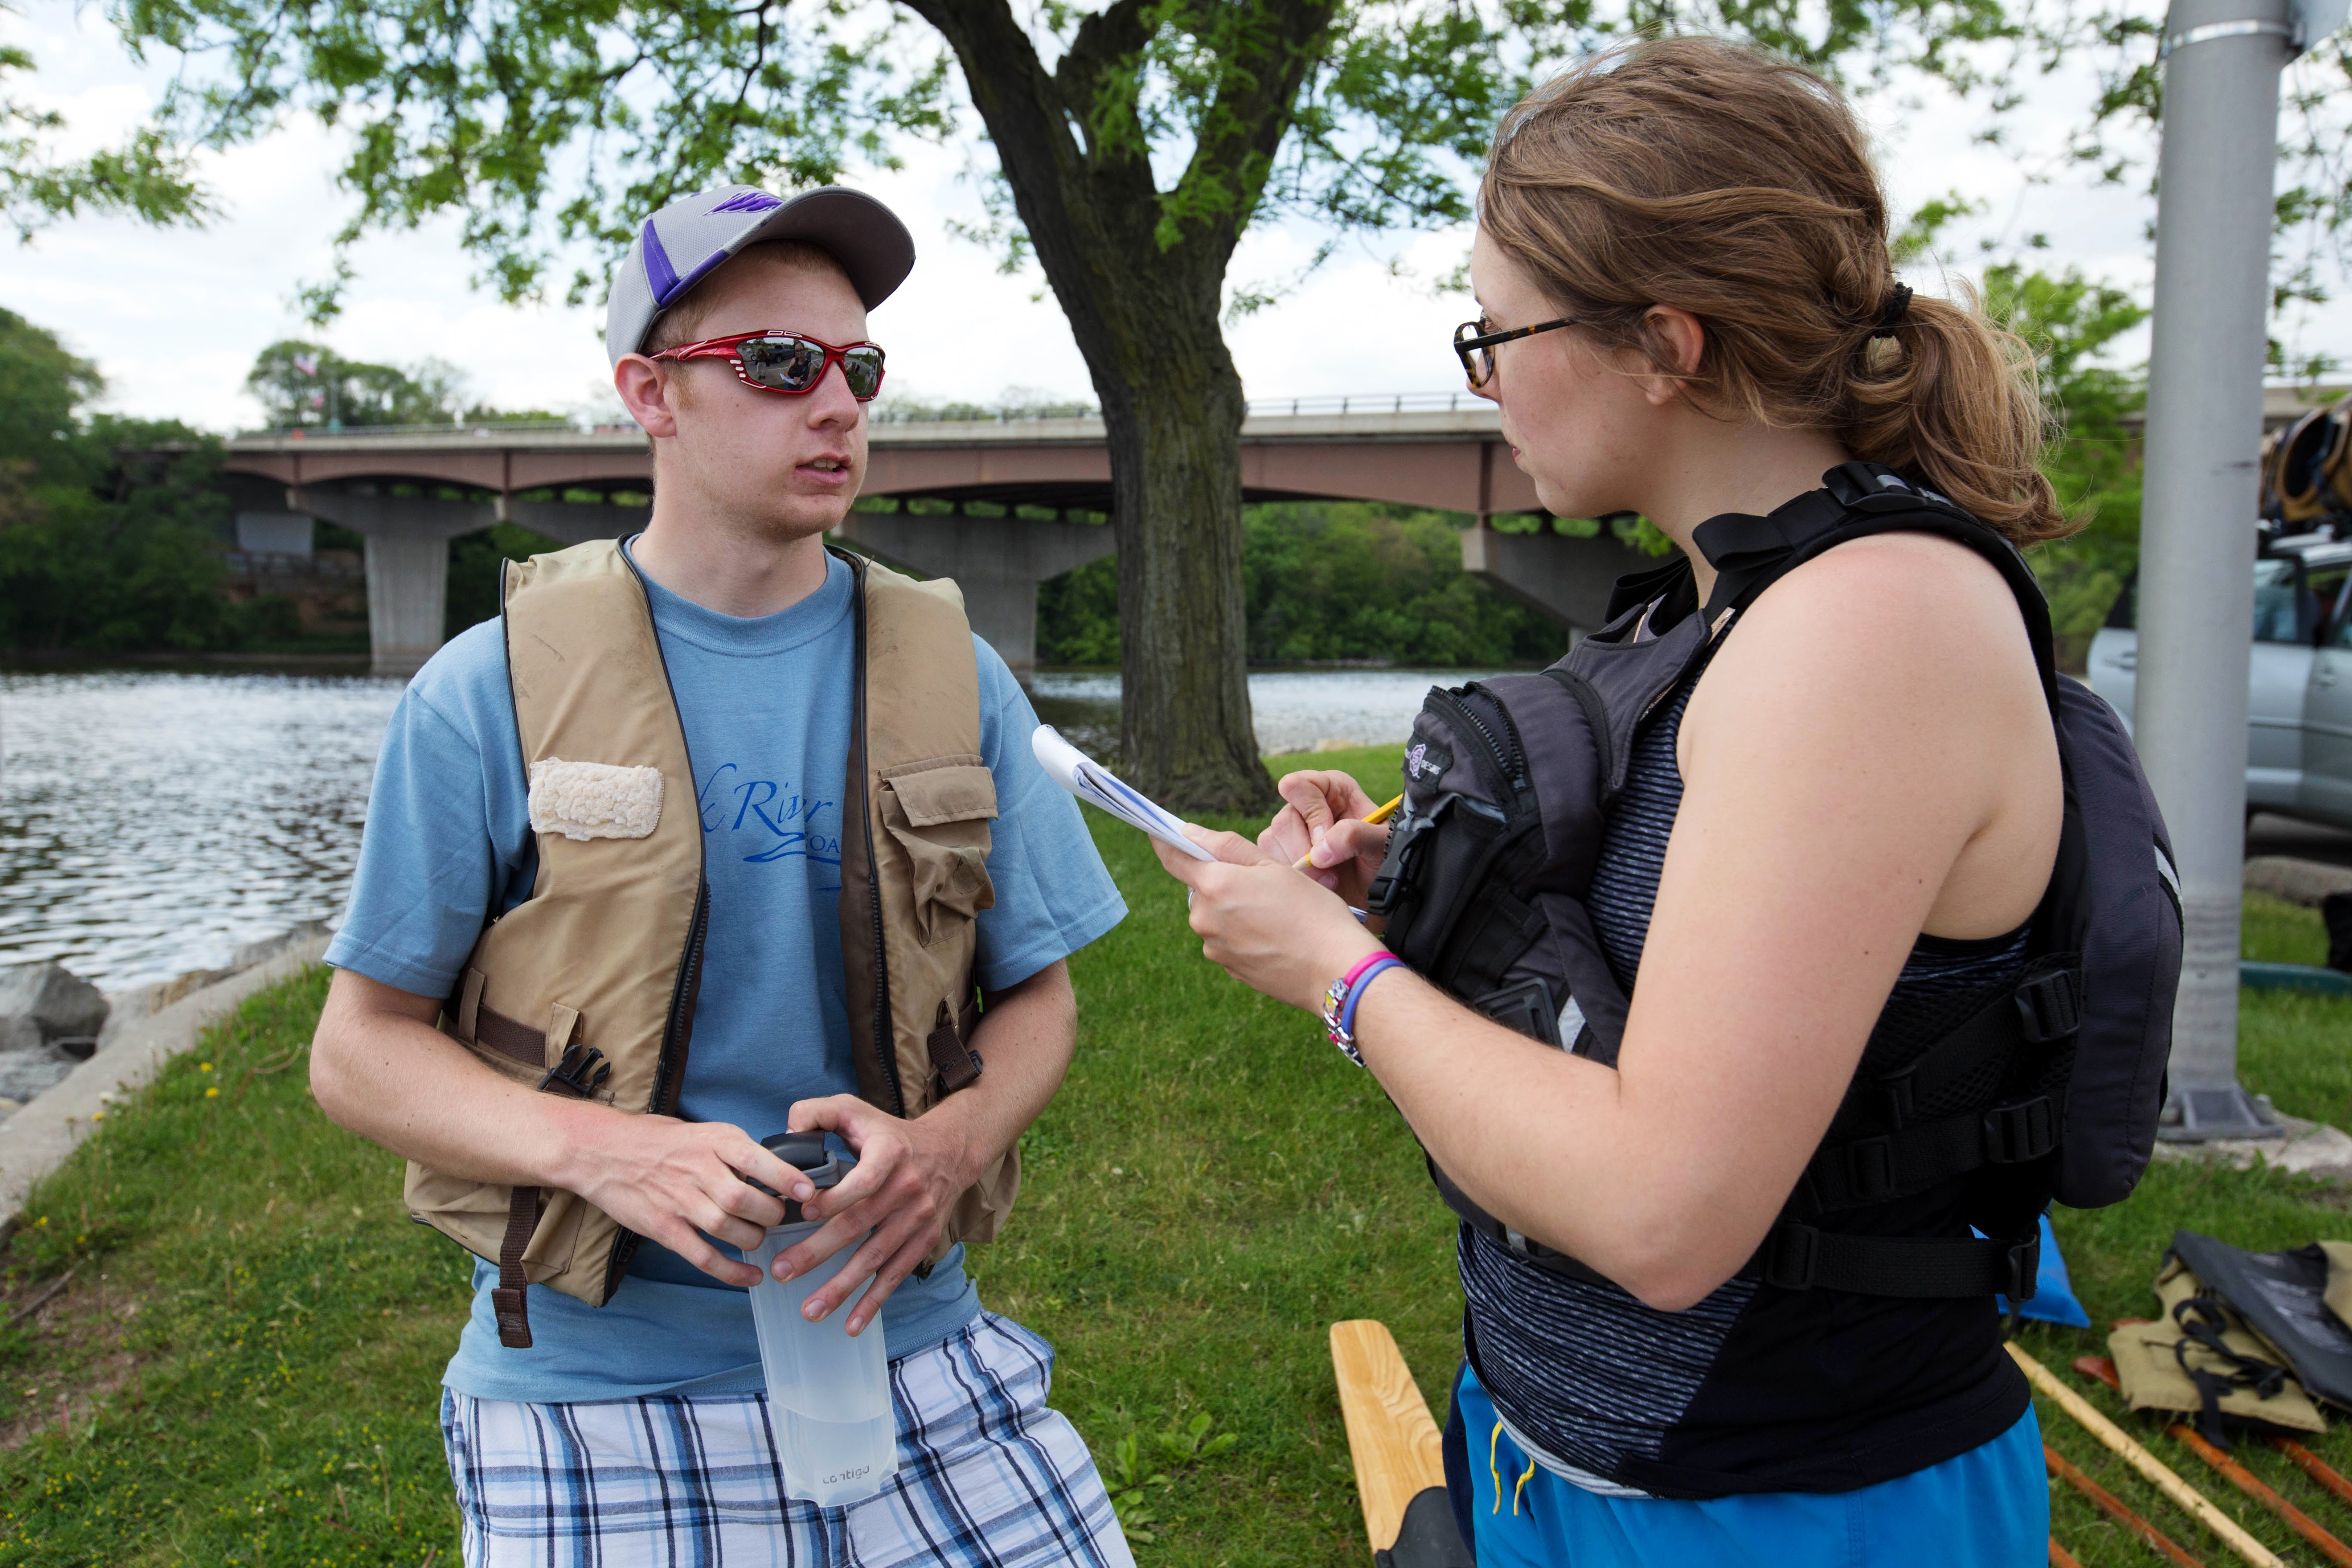 Porter VandeVorte, UWW undergrad, being interviewed. Photo by Craig Schreiner